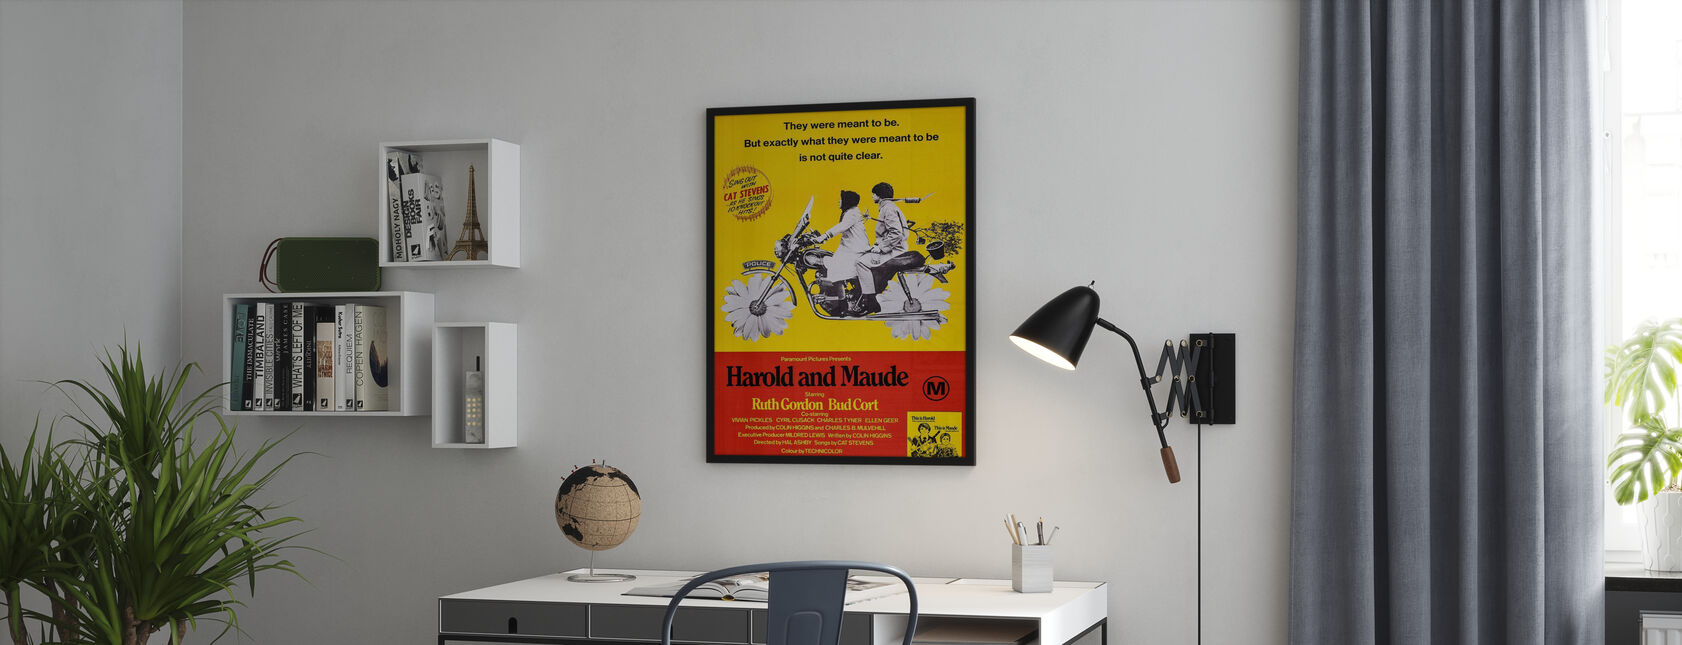 Harold and Maude - Poster - Office